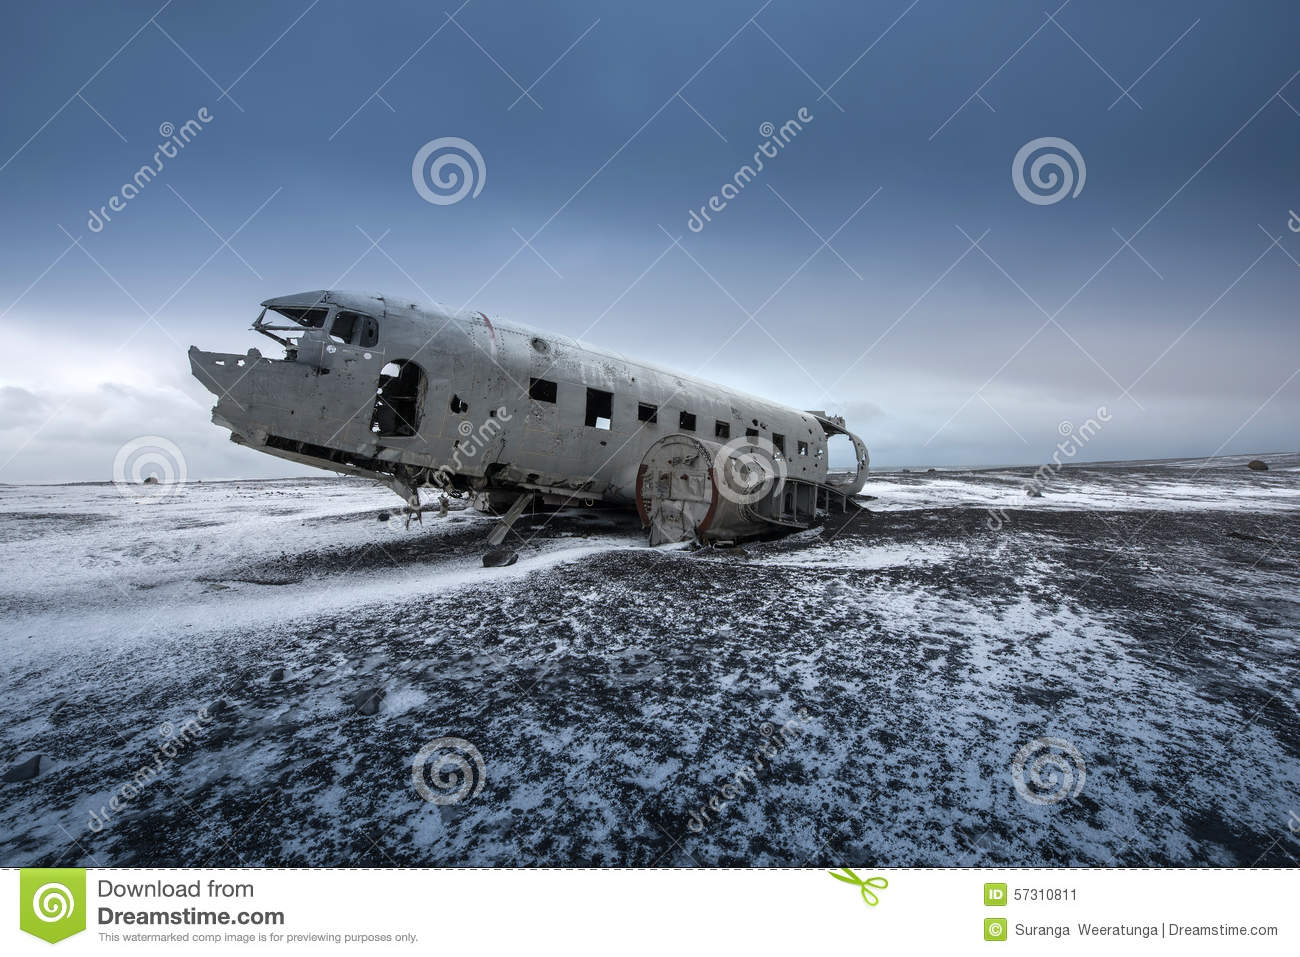 Stock Photo Plane Wreck Black Beach Iceland South Image57310811 on vacation house plans